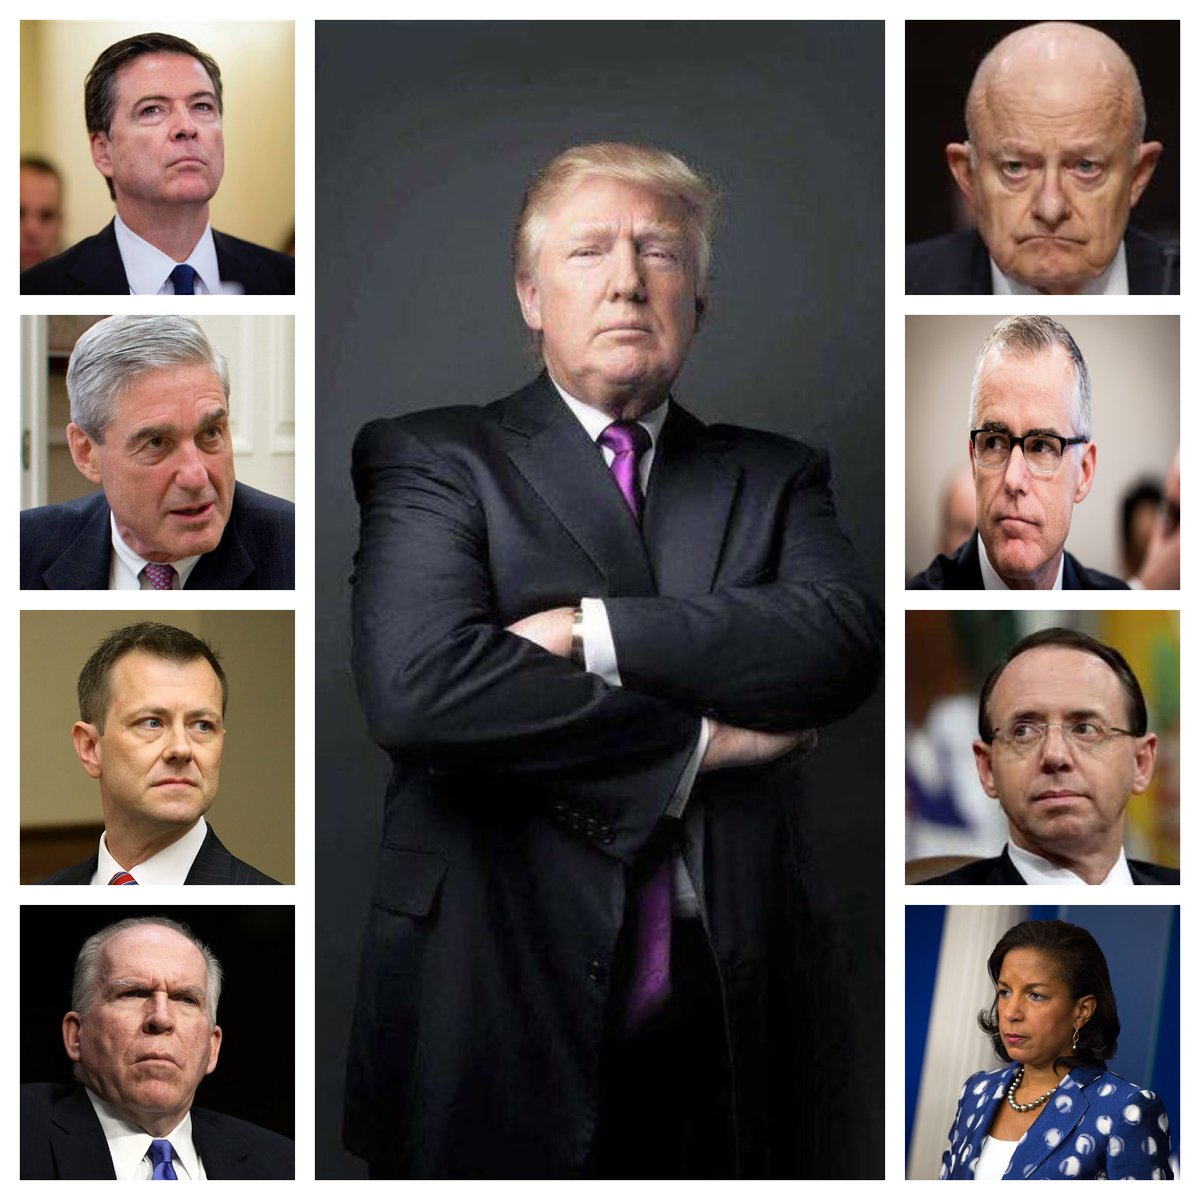 In any other country these 8 saboteurs interfering with free elections & committing crimes to undermine an elected President & his government, would have been tried & most likely executed by now. So why, here in America have their deeds been ignored and they continue to plot⁉️